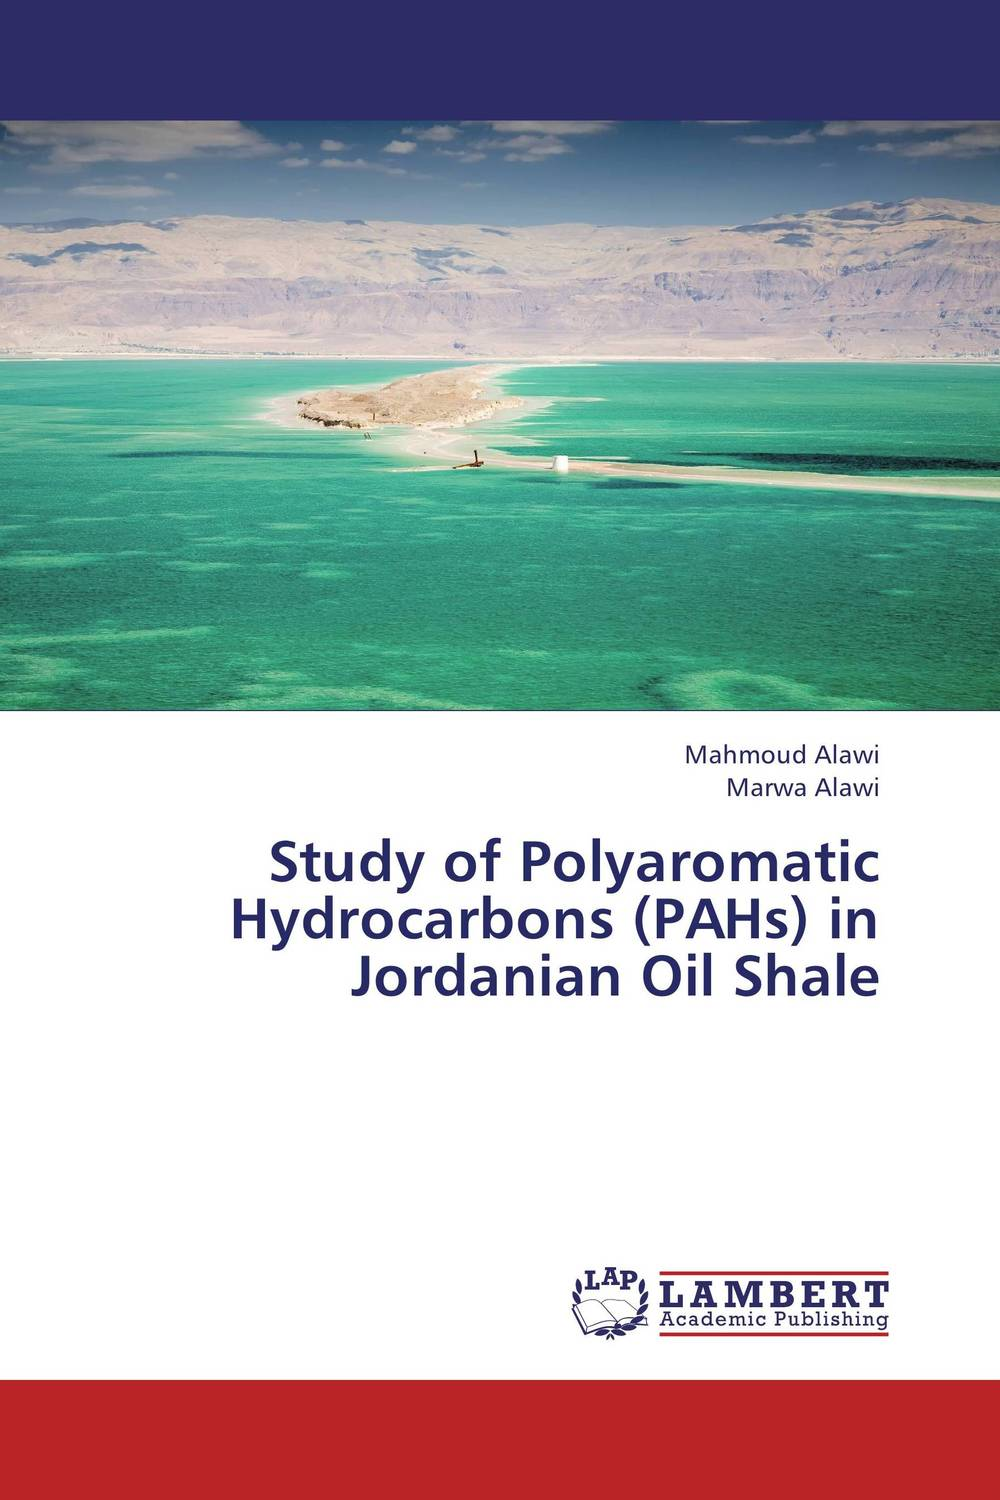 Study of Polyaromatic Hydrocarbons (PAHs) in Jordanian Oil Shale